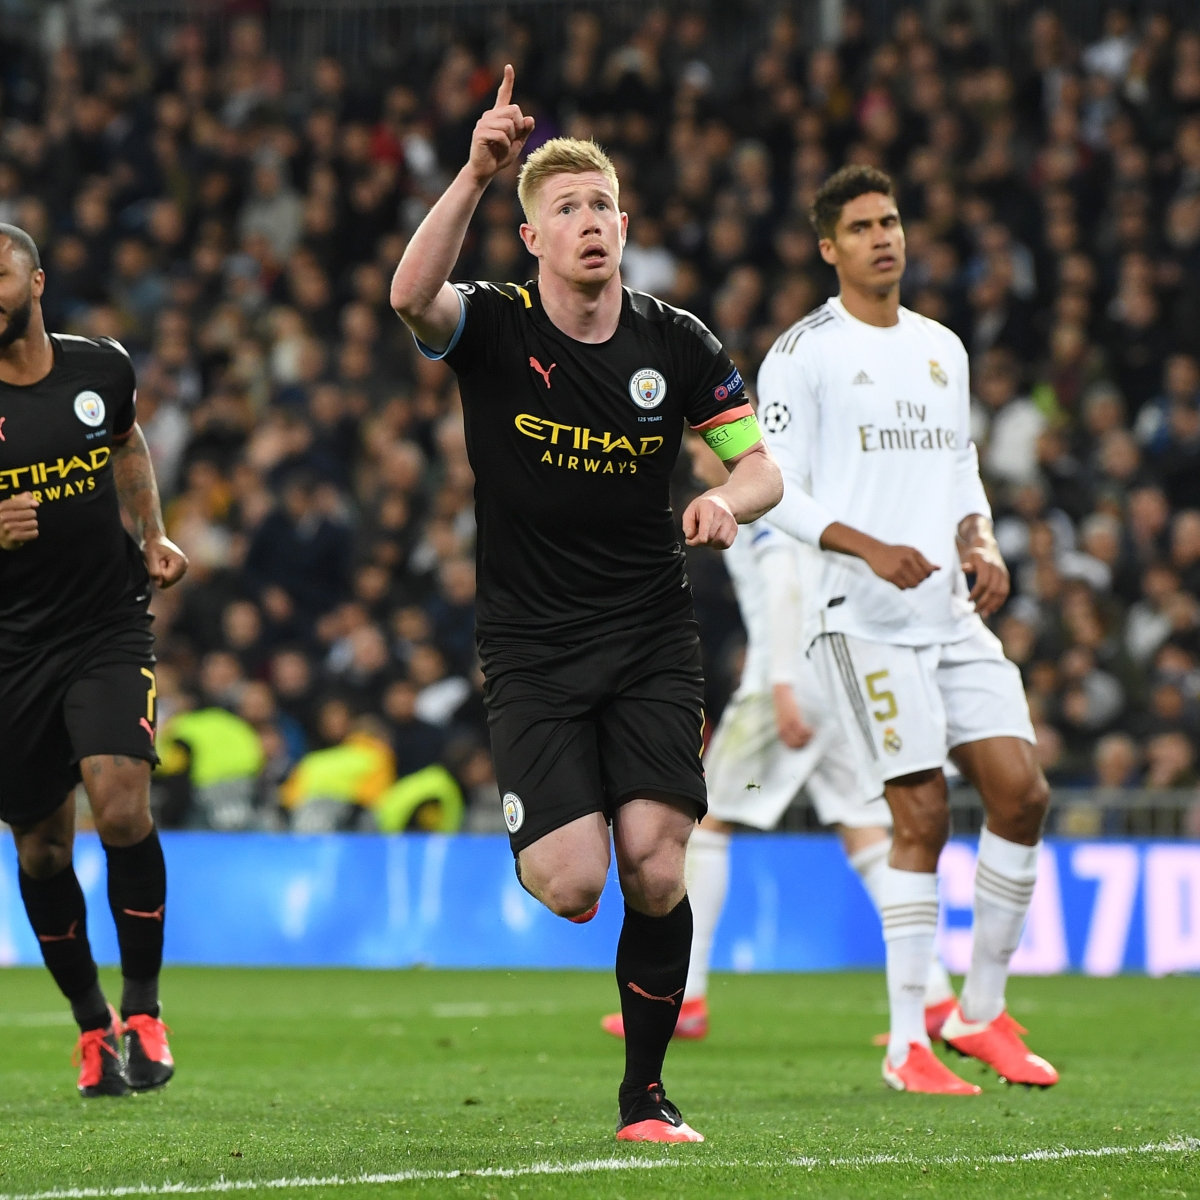 'The king conquers Madrid': Twitter hails Man City's Kevin de Buyne for his heroics in incredible win at Real Madrid